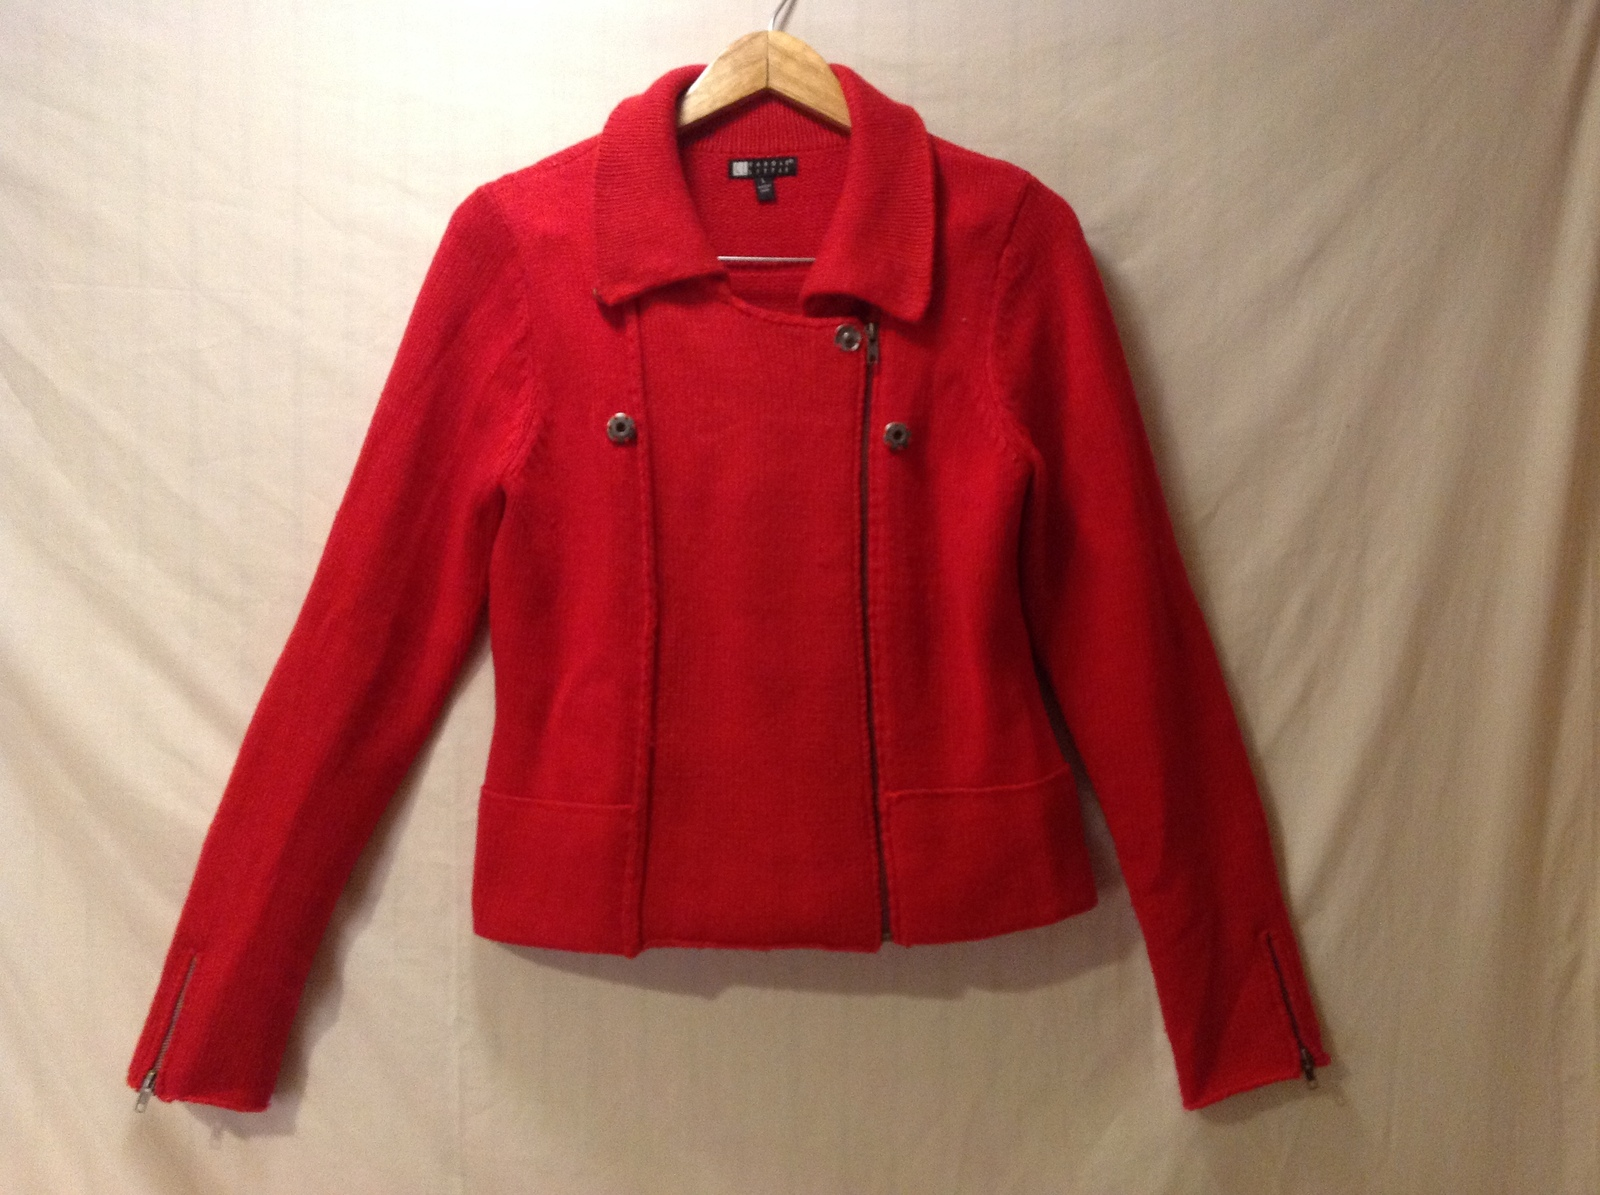 Carole Little Womens Red Sweater, Size Large